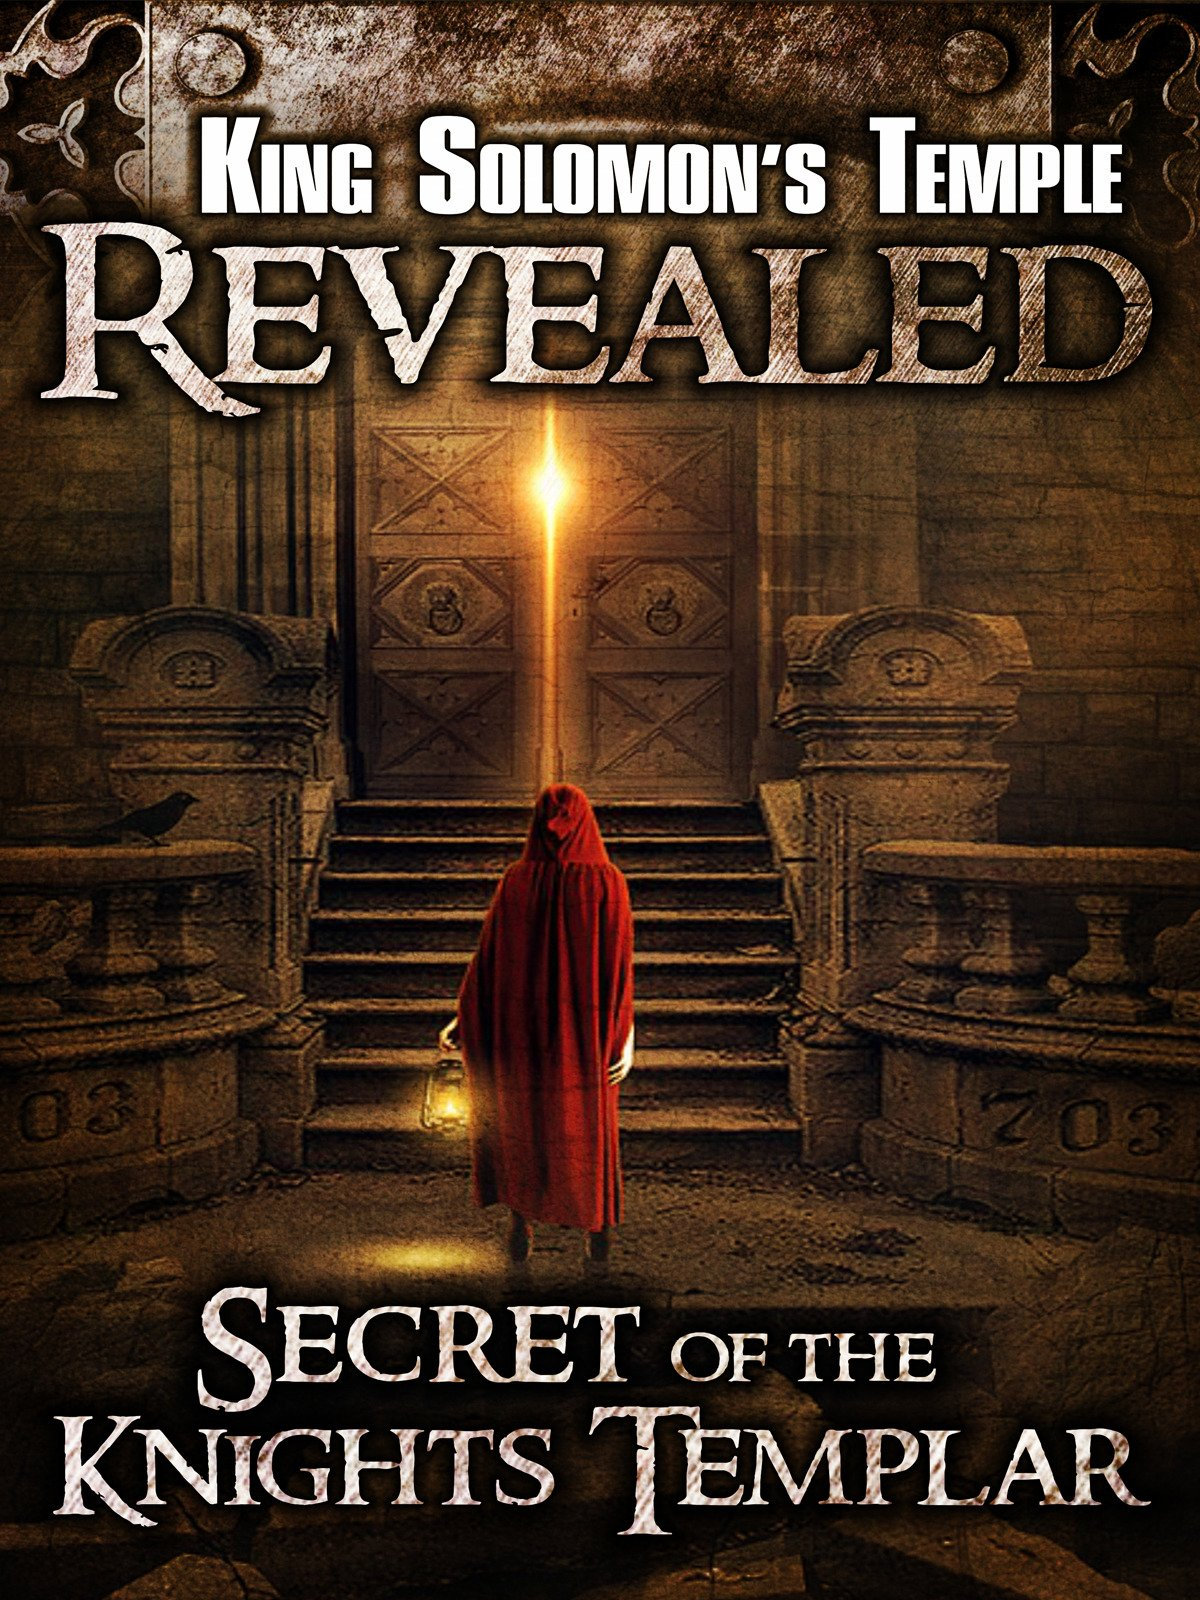 King Solomon's Temple Revealed: Secrets of the Knights Templar on Amazon Prime Video UK